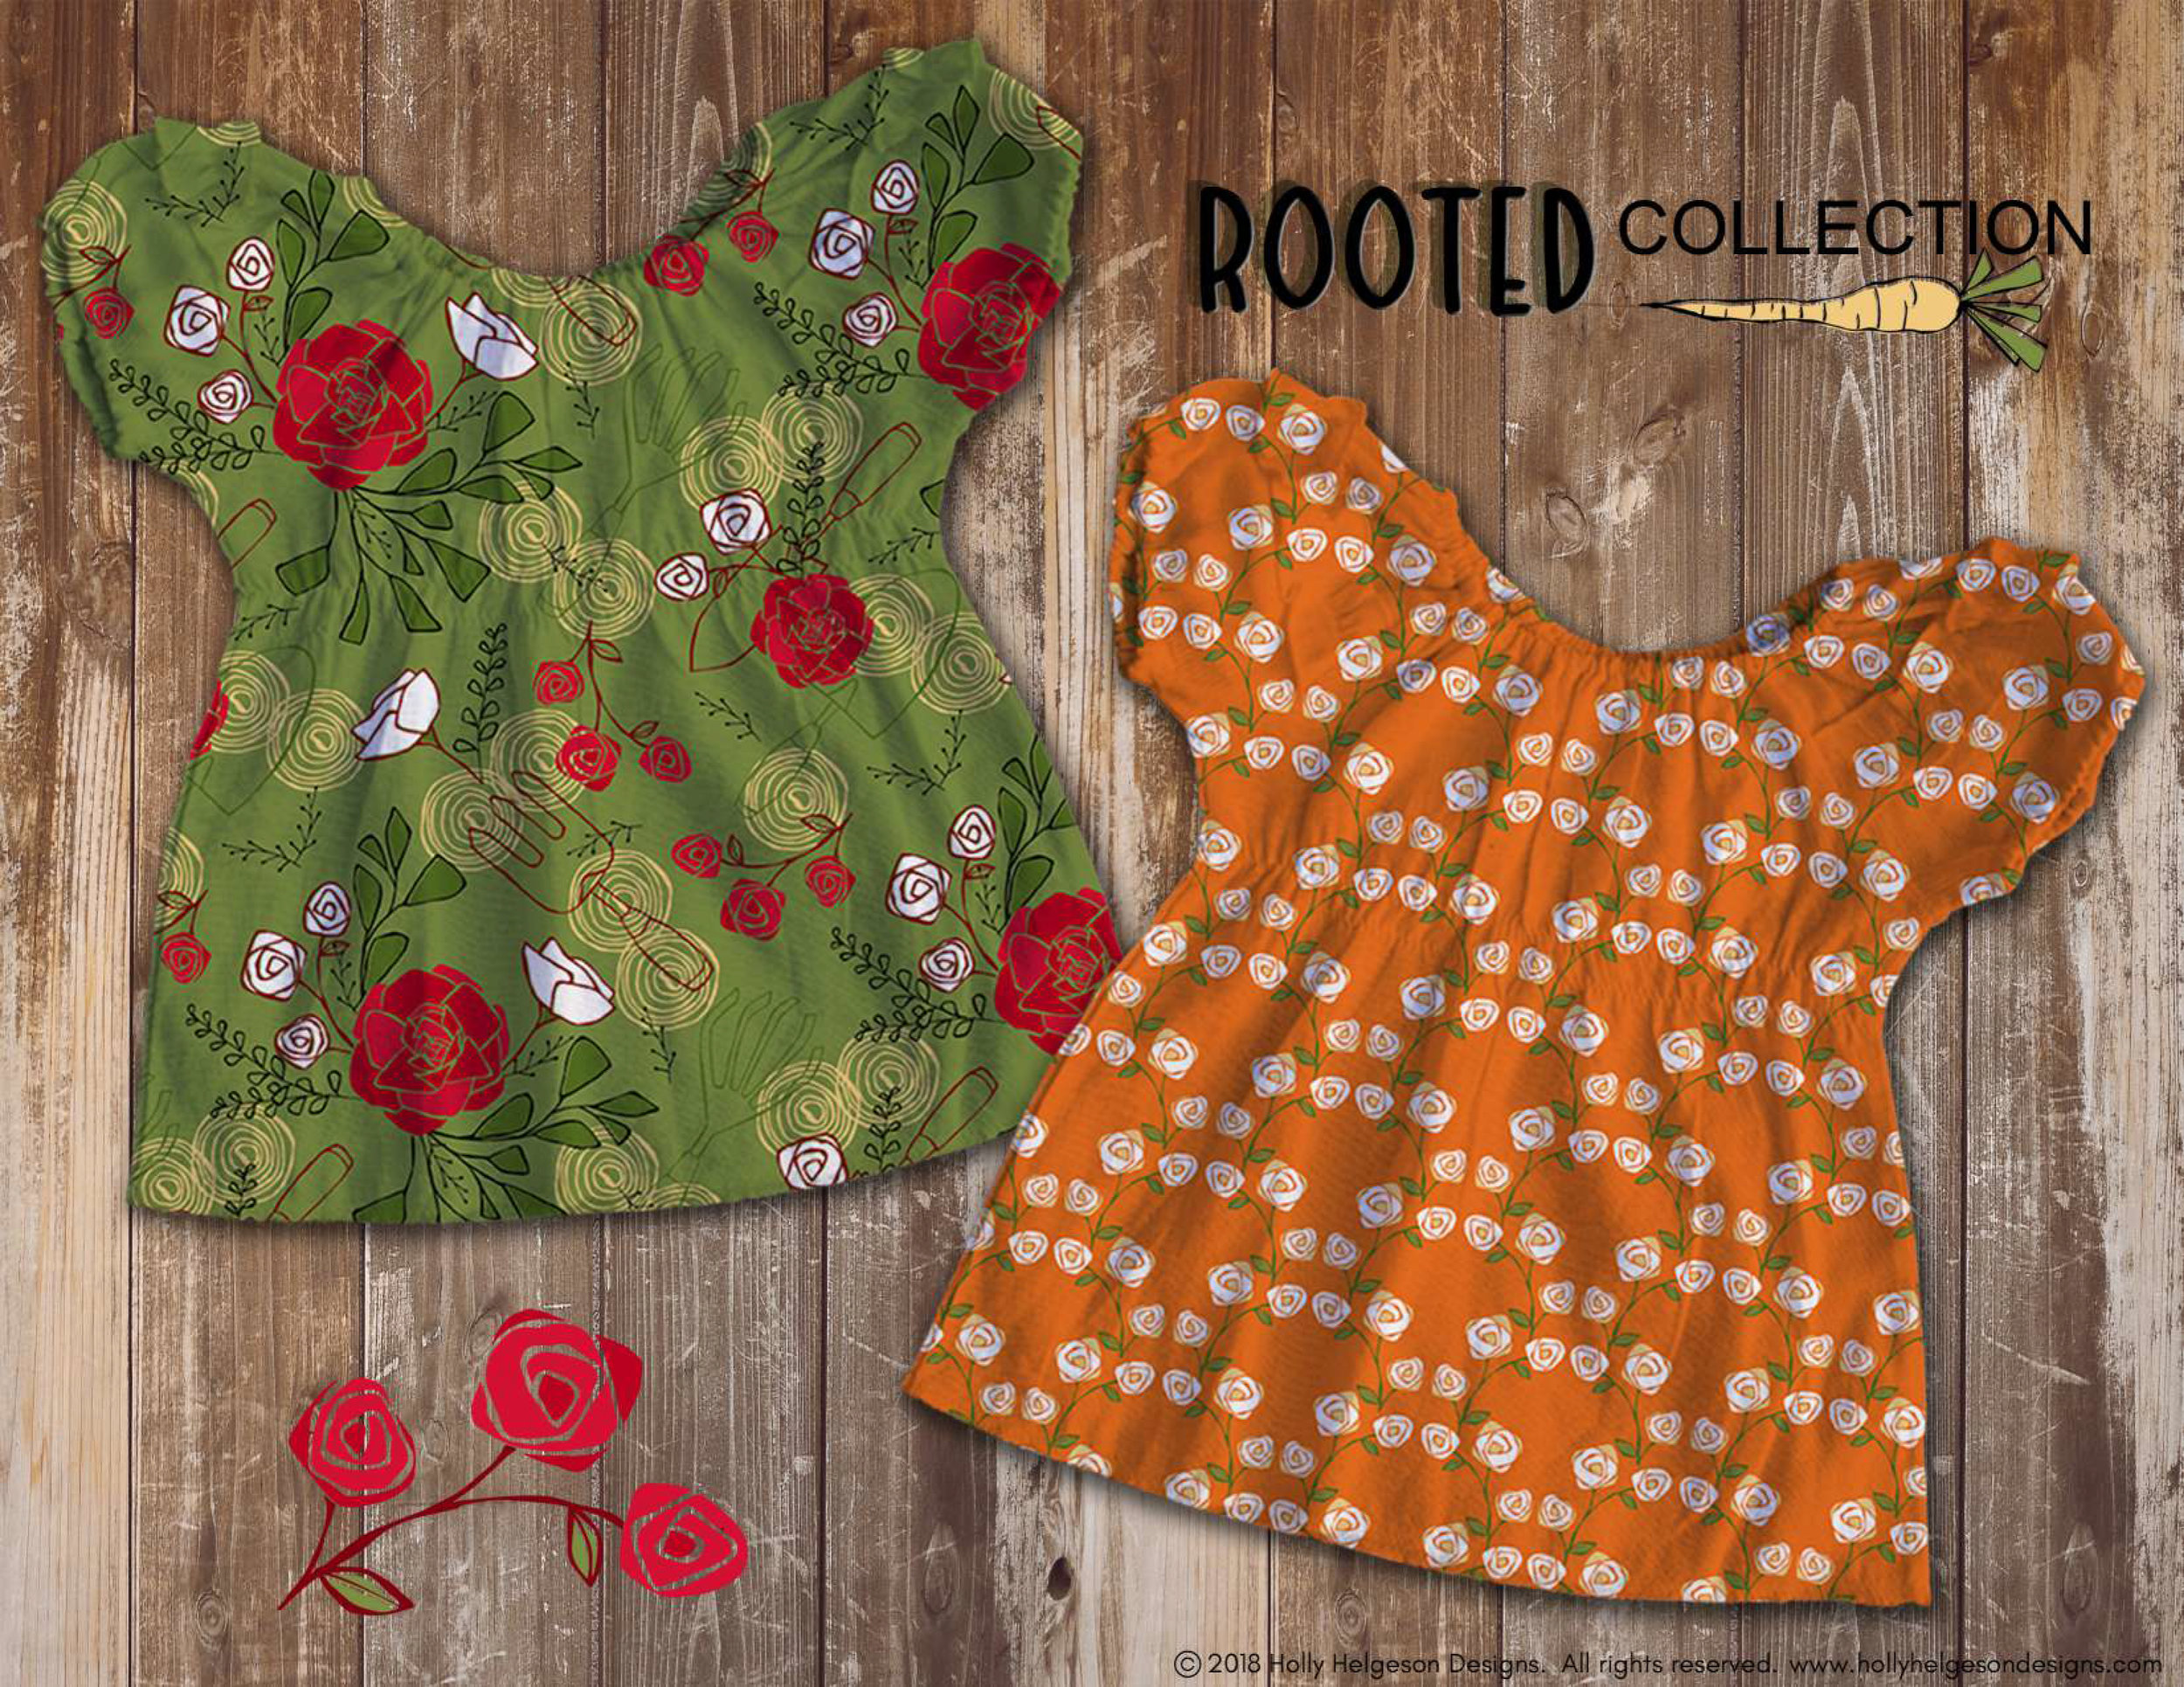 2018 Rooted Collection by Holly Helgeson-15.jpg